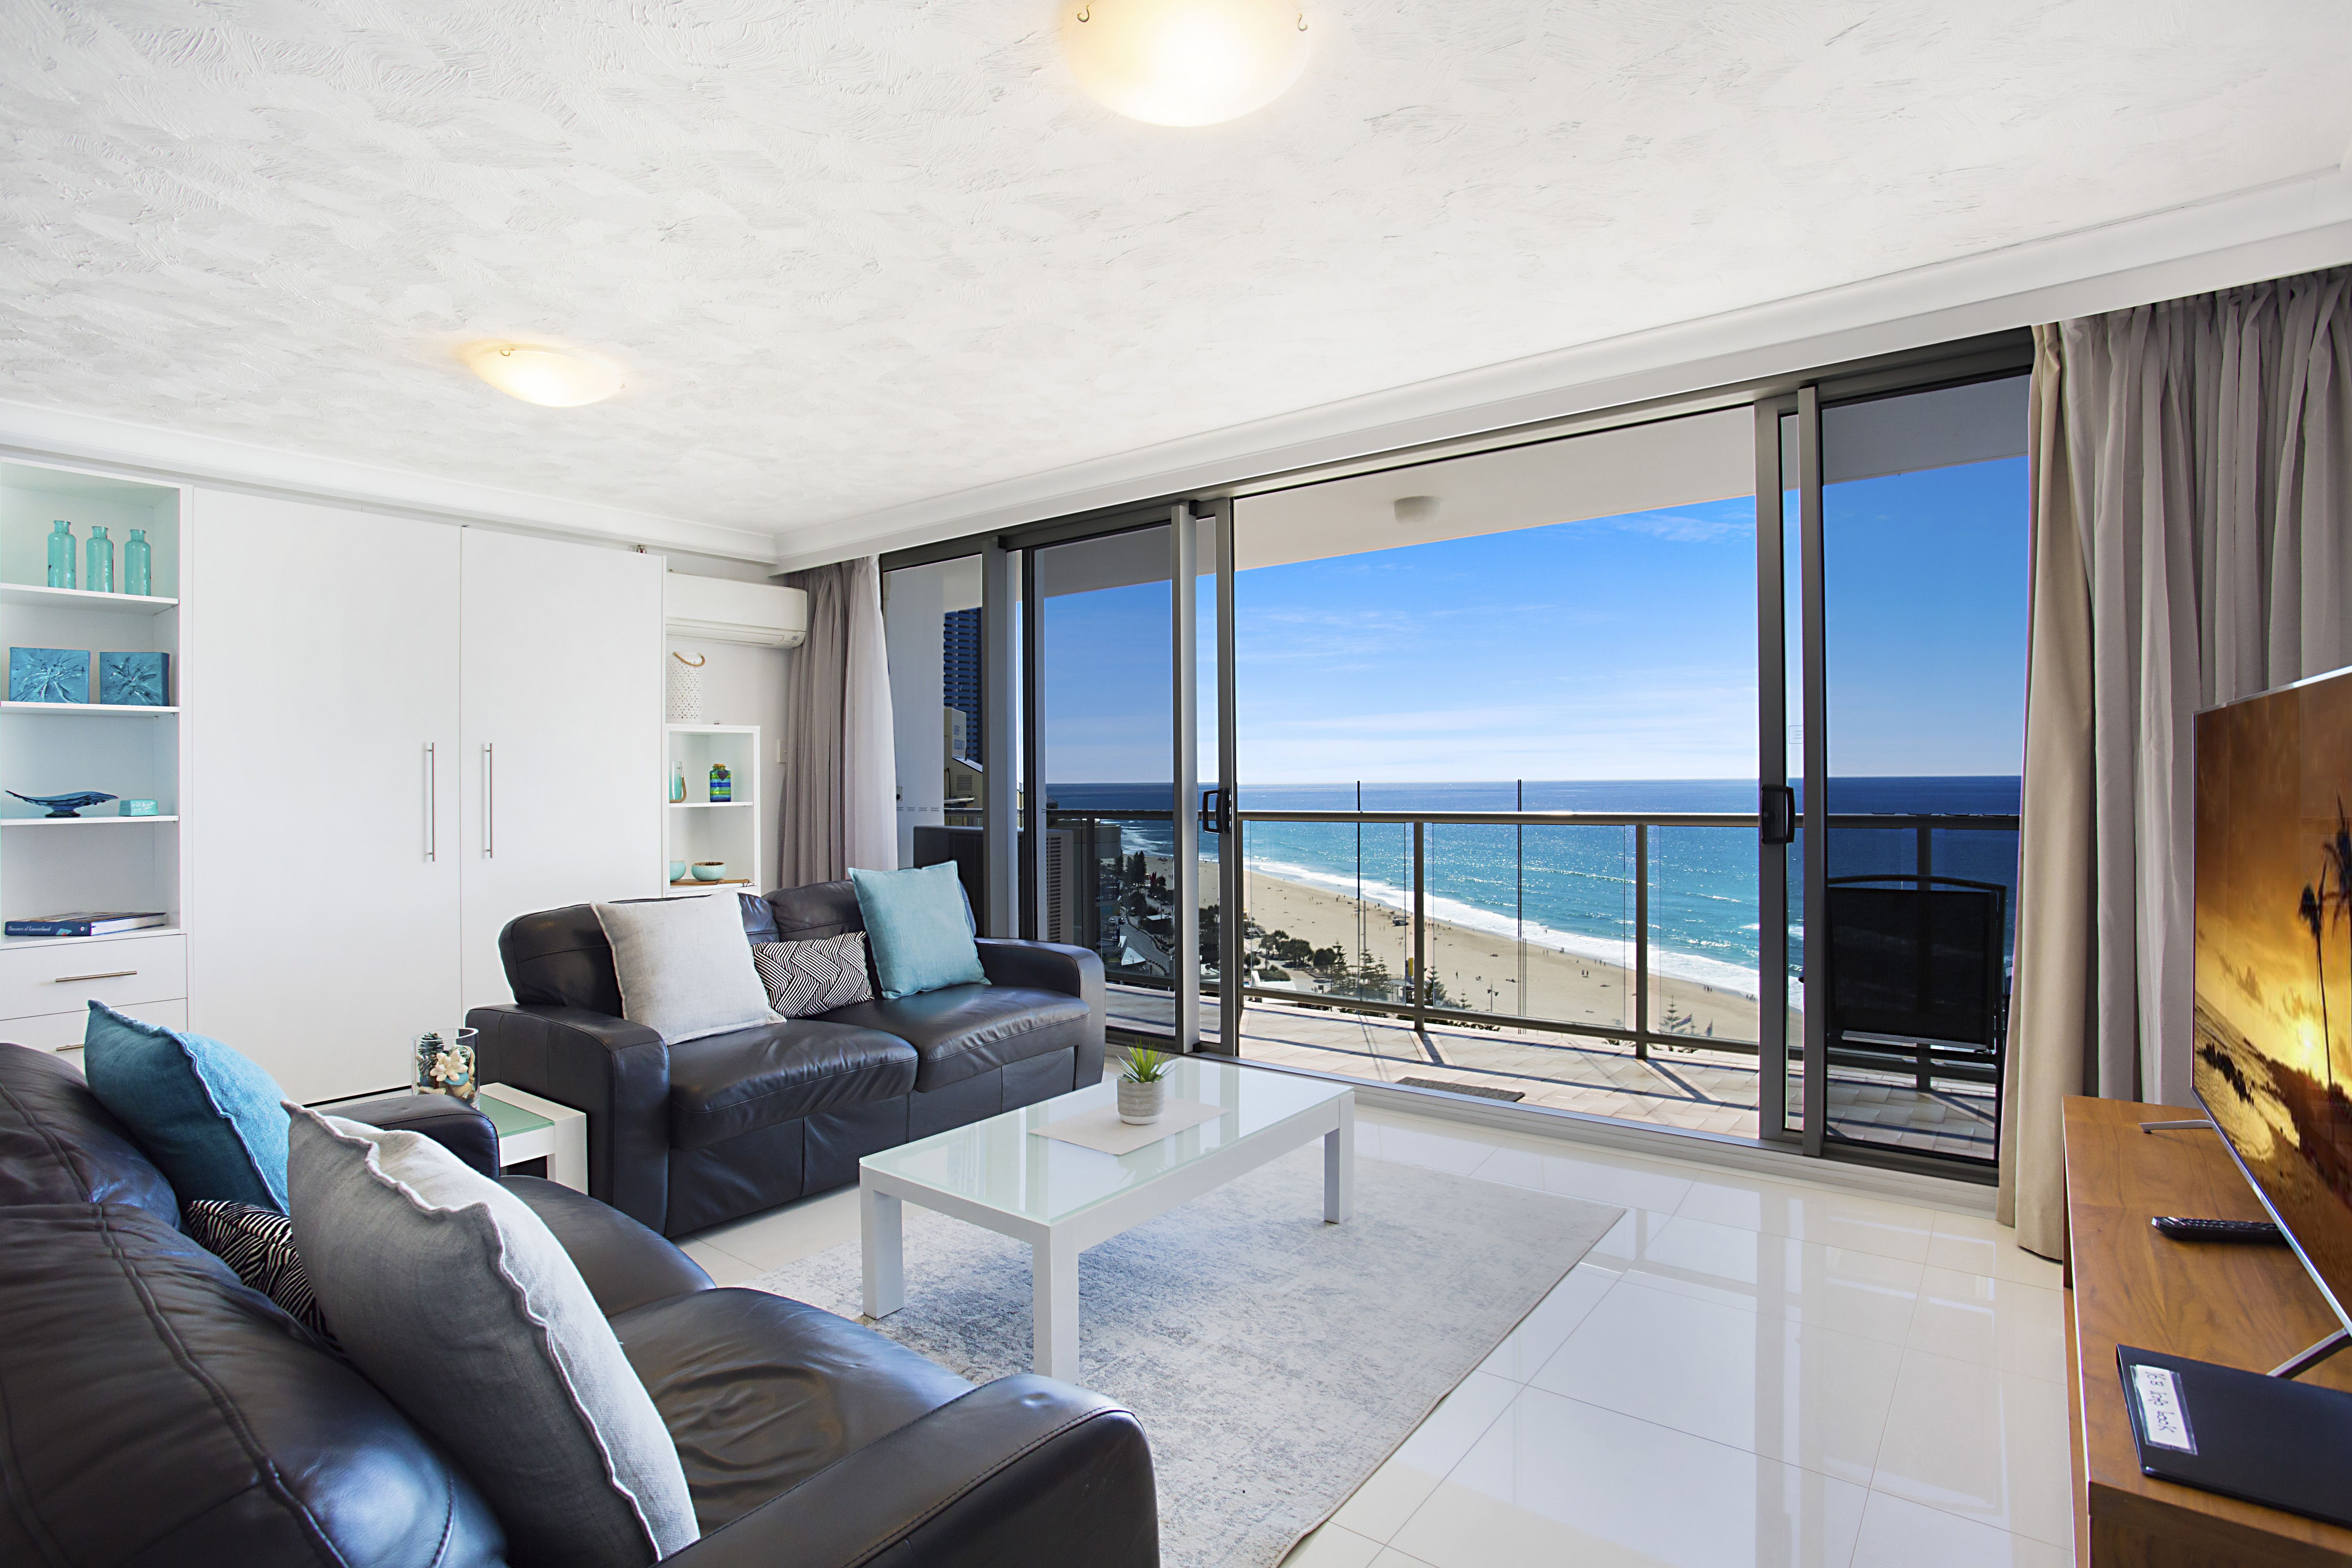 Relax And Unwind 50m From The Beach At 16b The Peninsula Aparments 2 Bedroom 2 Bathroom And A Queen Wallbed In Loun Apartment Complexes Apartment Bed Wall